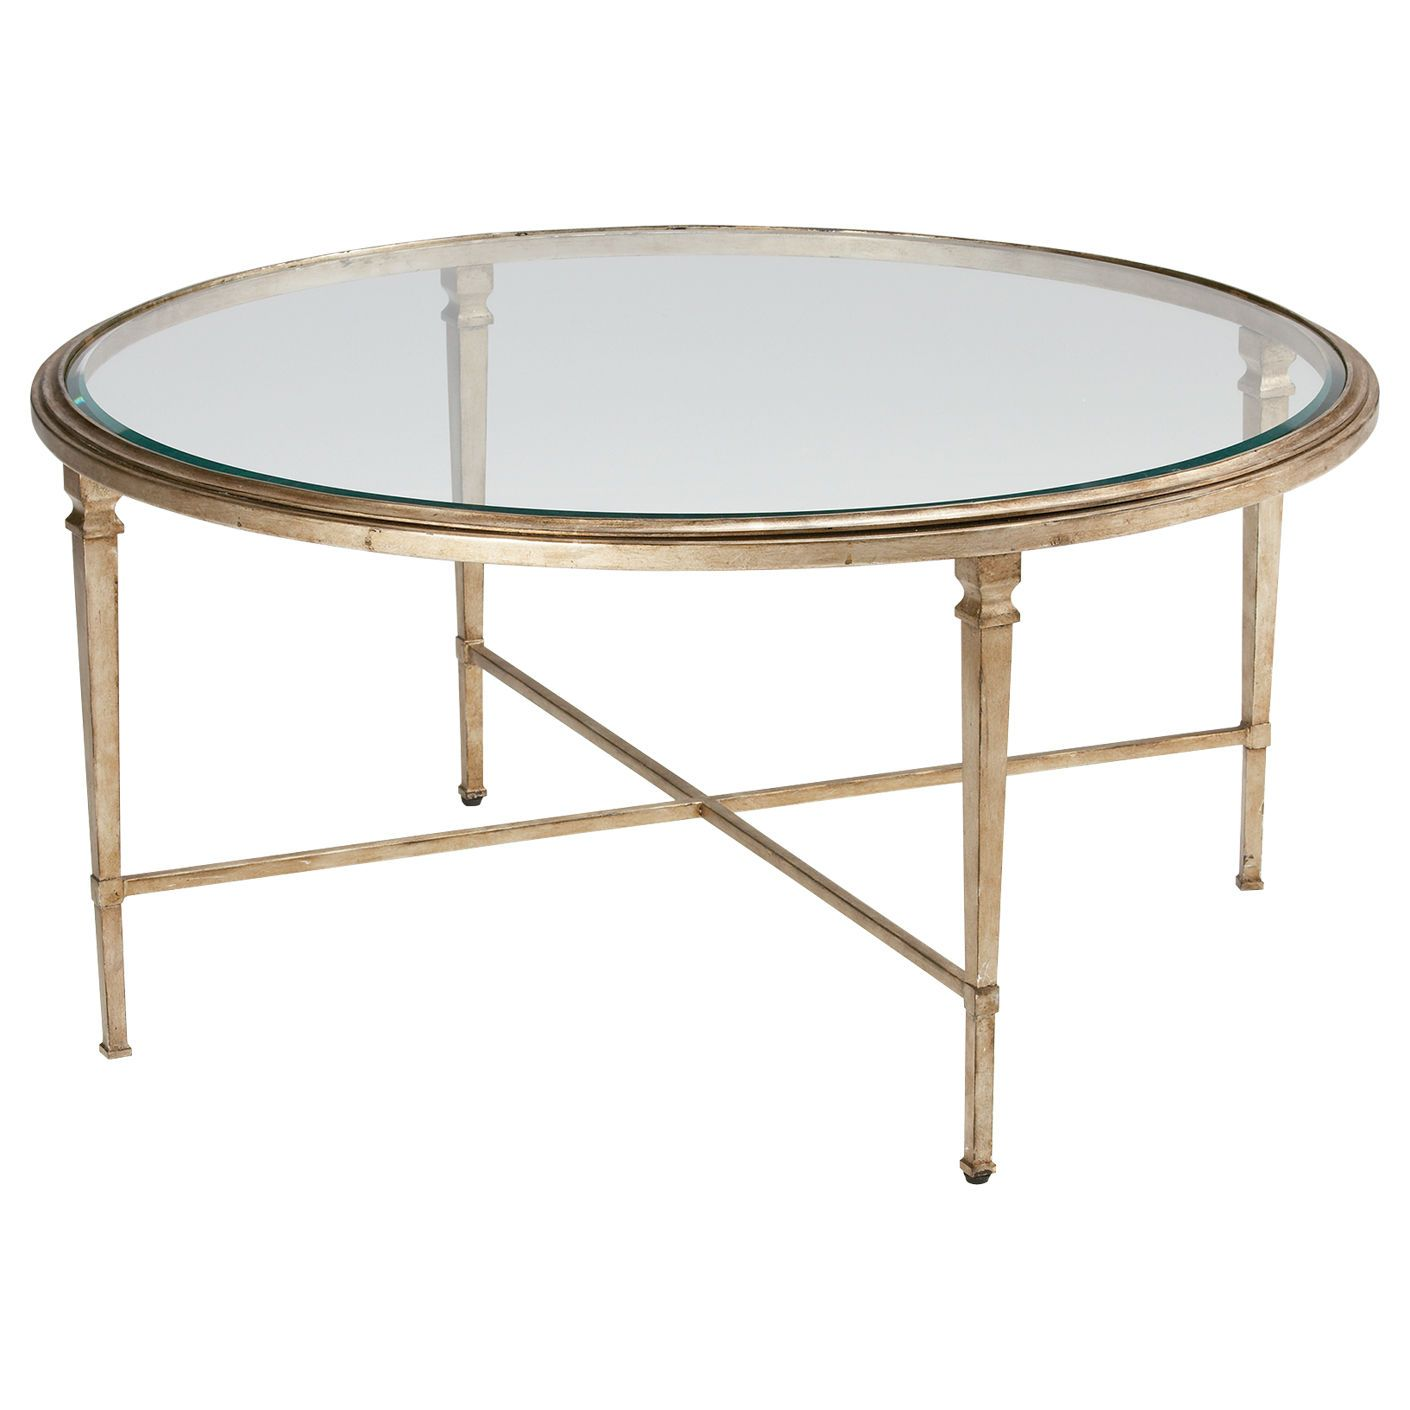 All Ethan Allen Coffee Tables: Silver Home Decor. Heron Round Coffee Table